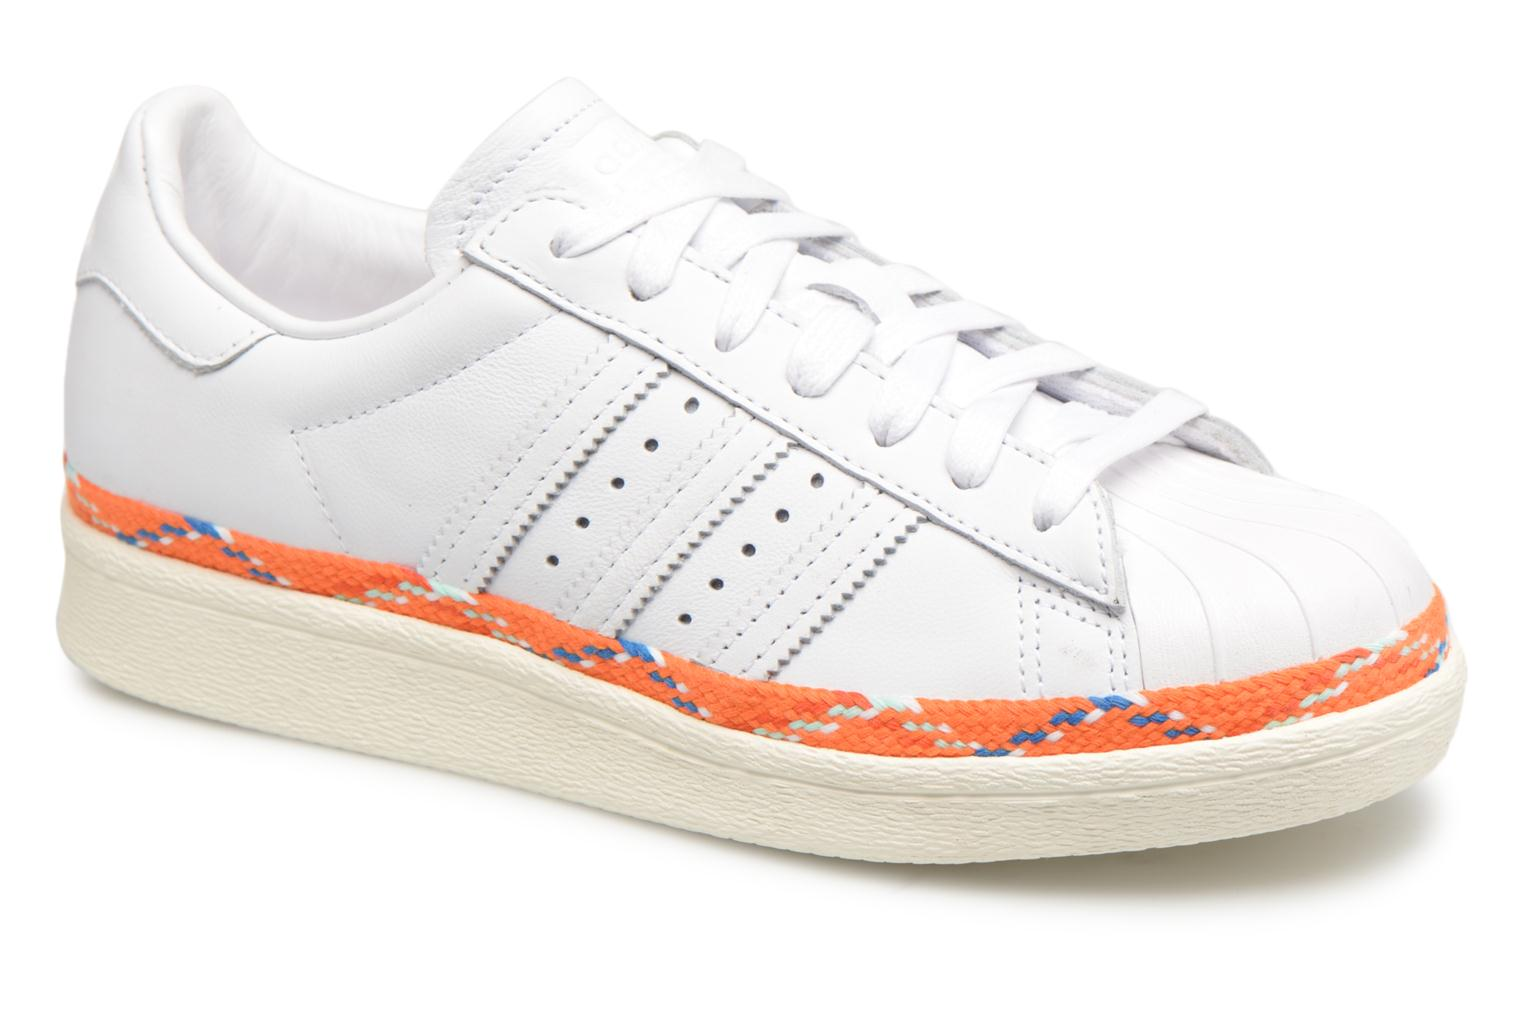 ftwr ftwr New white off 80s W Originals white Adidas white Bold Superstar n8YwHW1qO